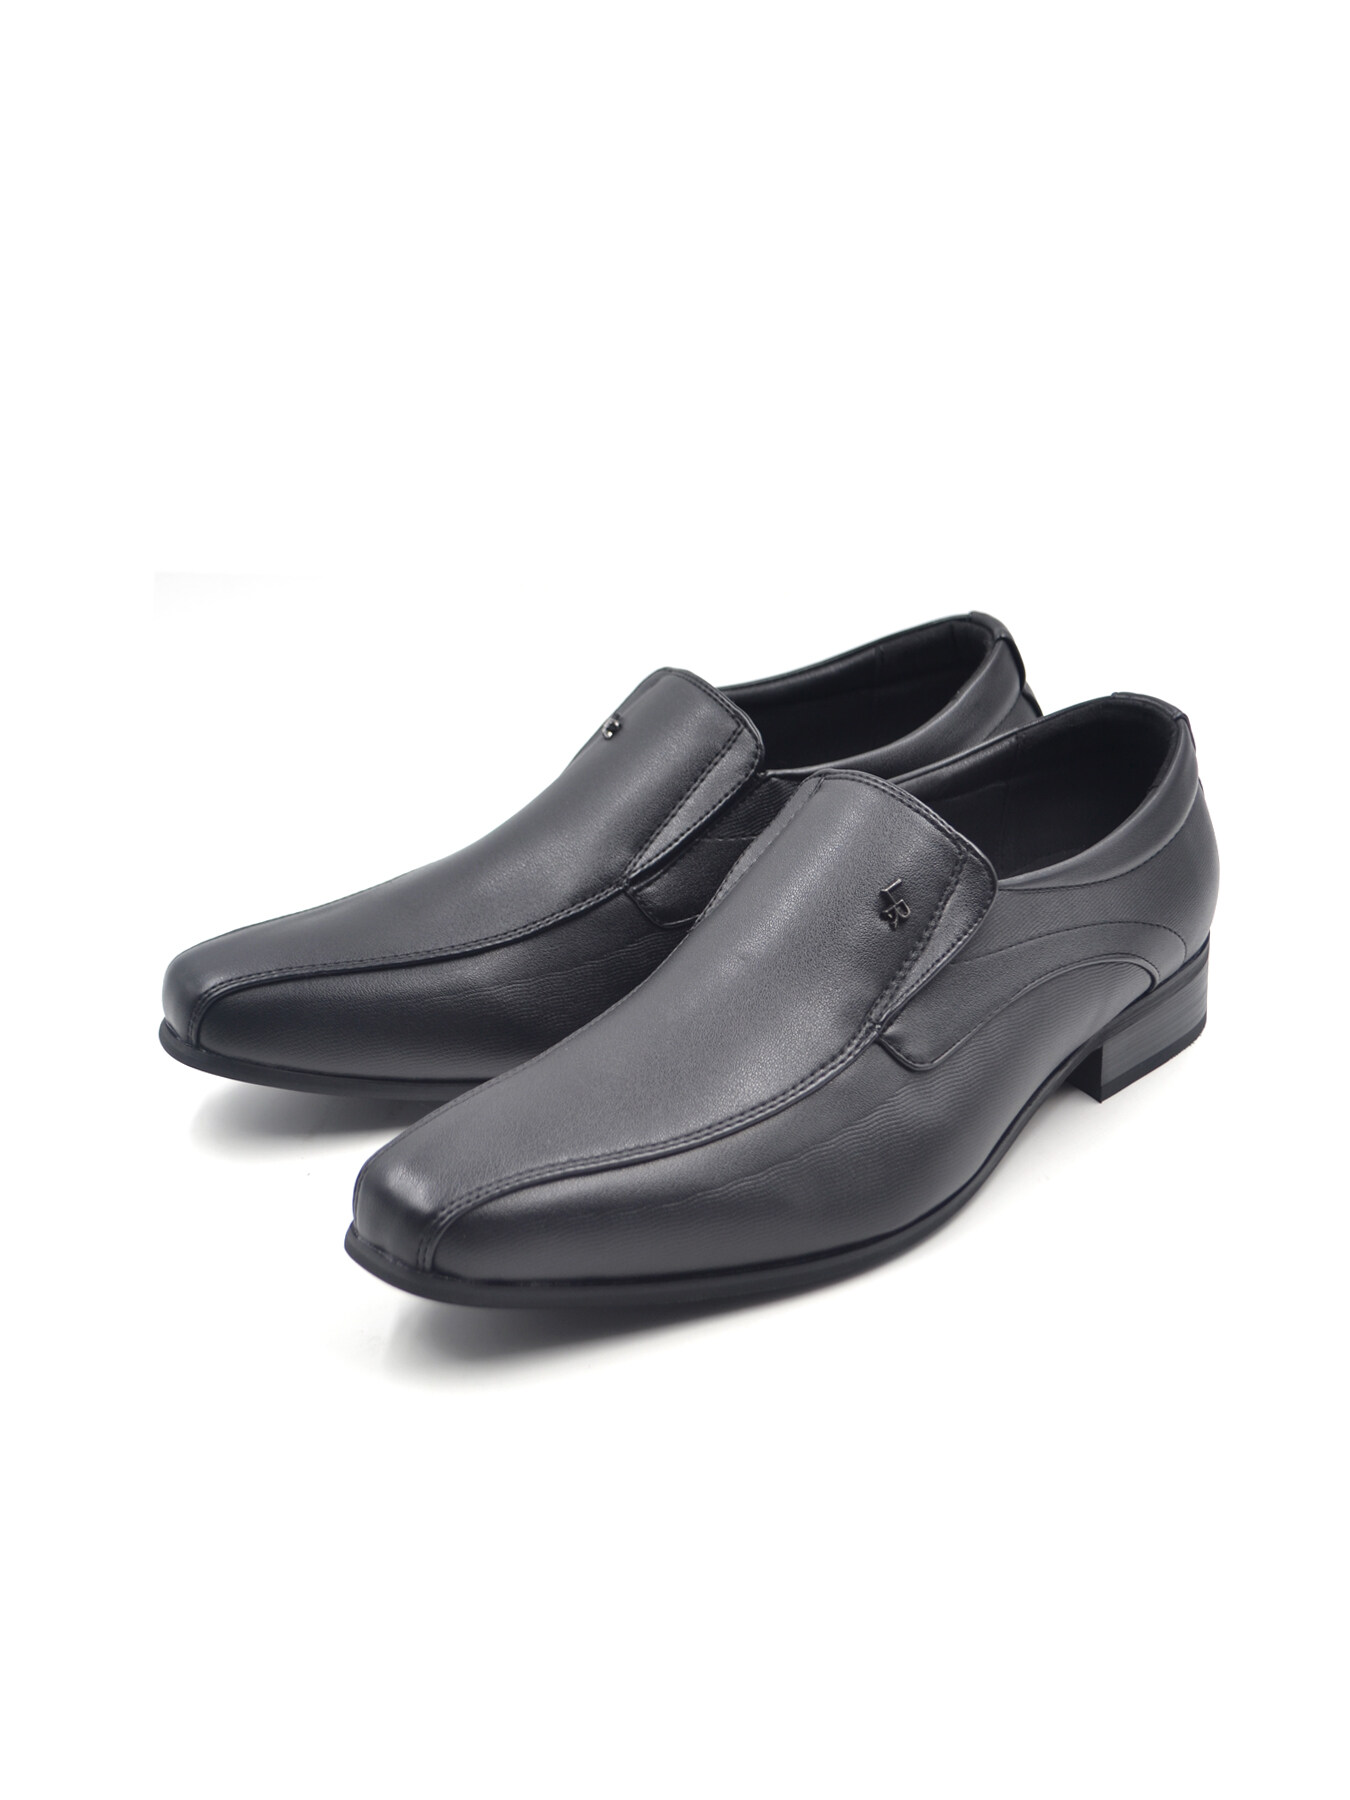 LR Larrie Black Classy Smooth Panel Business Shoes 902001-TL2-1P-BLACK